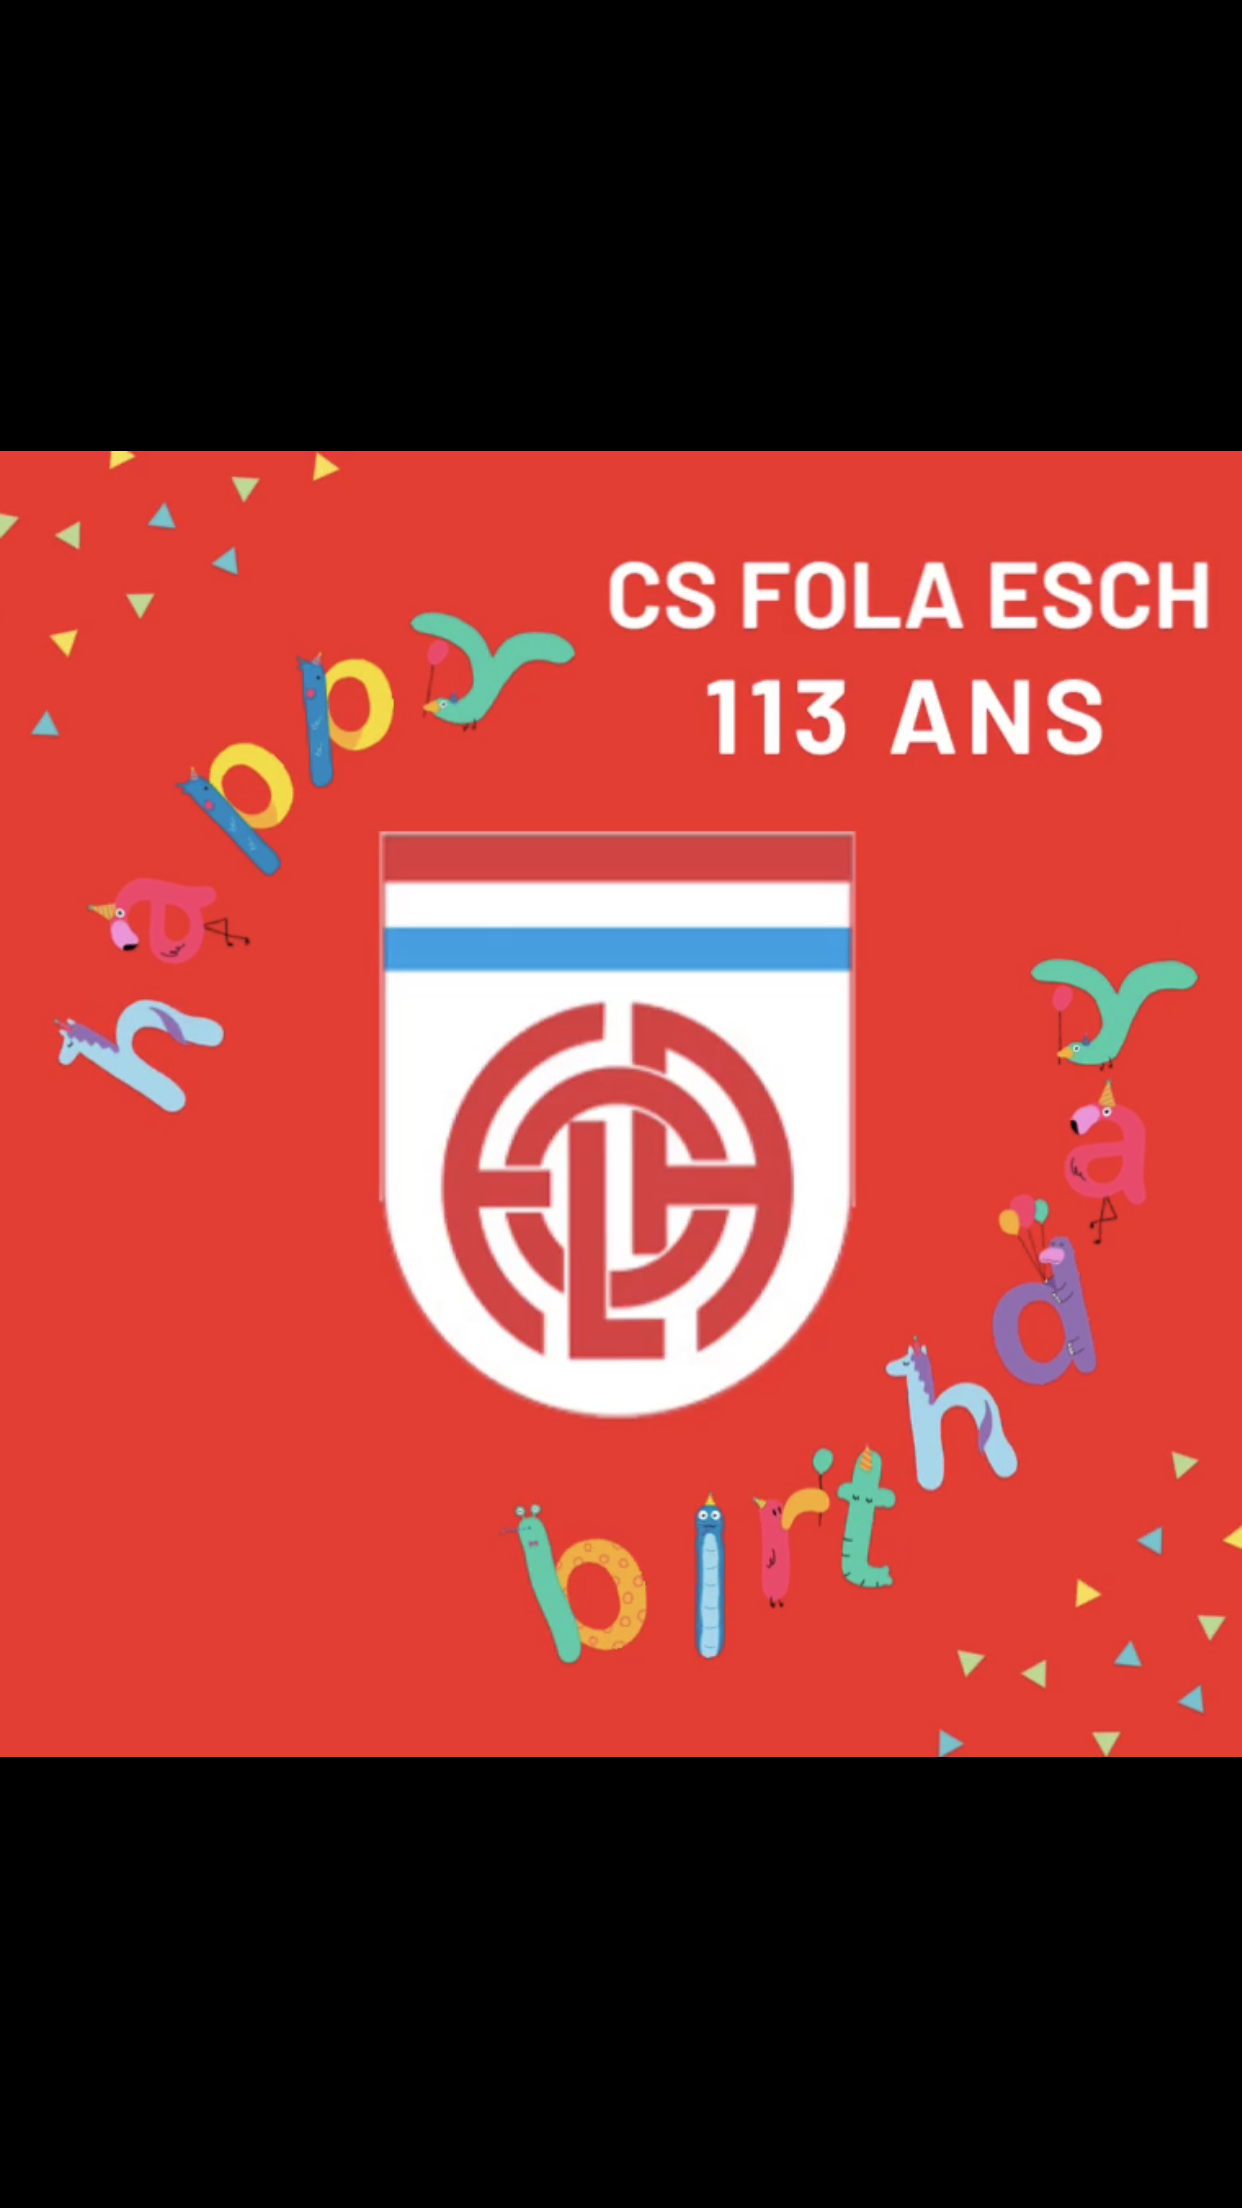 Alles Guddes fier deng 113 CS FOLA; Happy 113th birthday CS FOLA, Joyeux 113e anniversaire CS FOLA